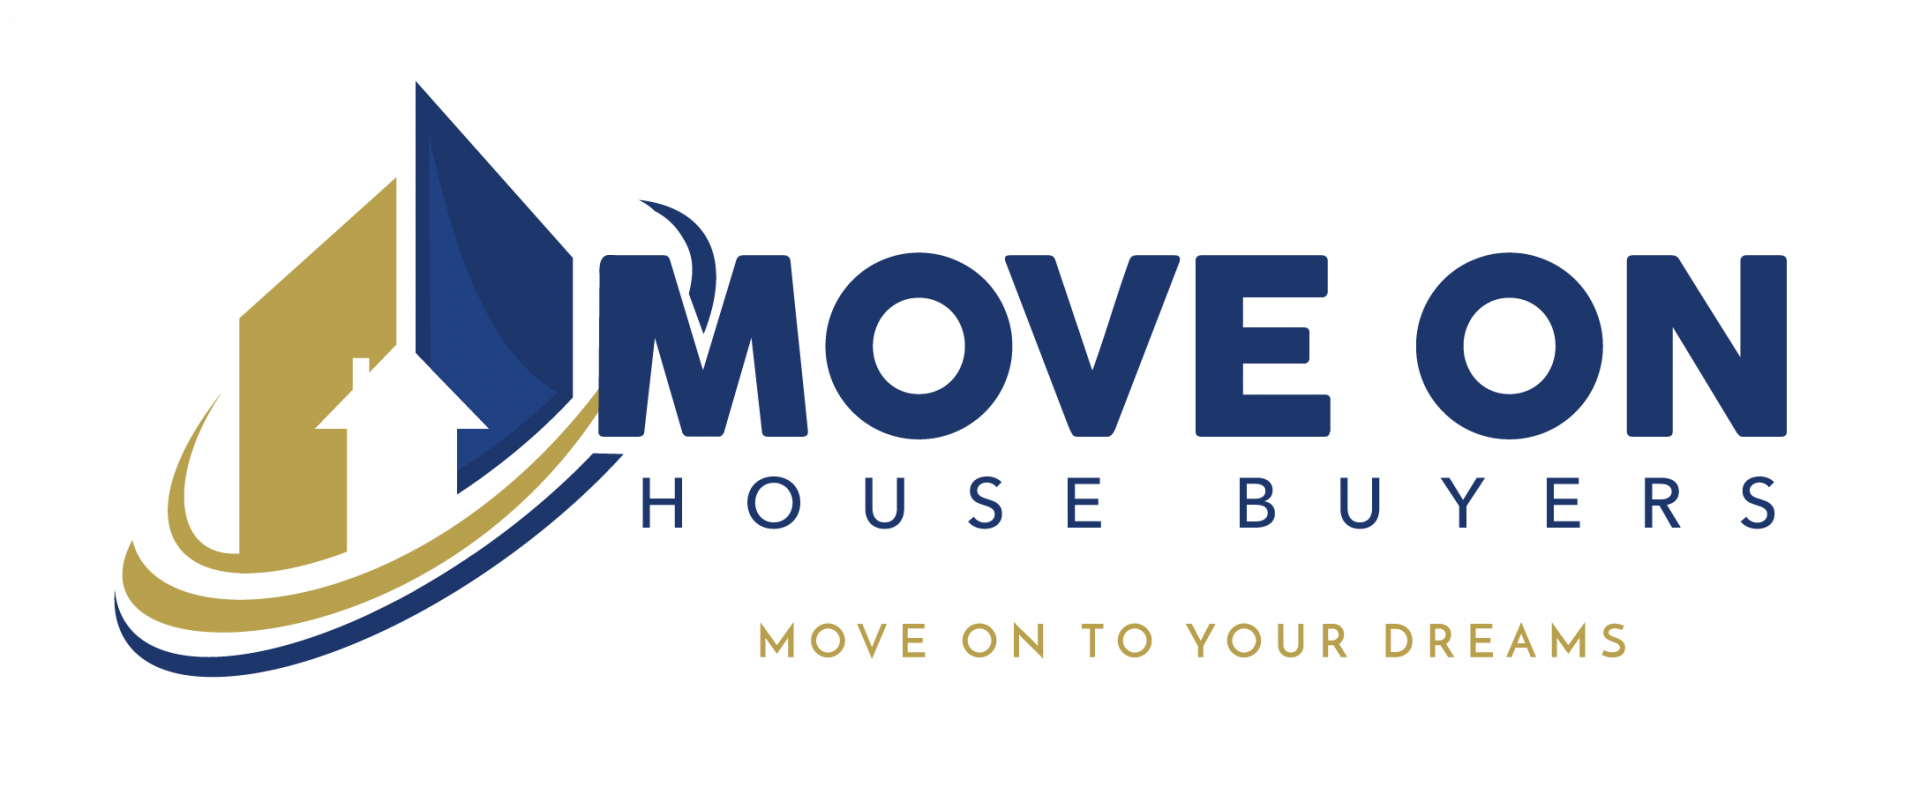 Move On House Buyers – We Buy Houses Fast logo